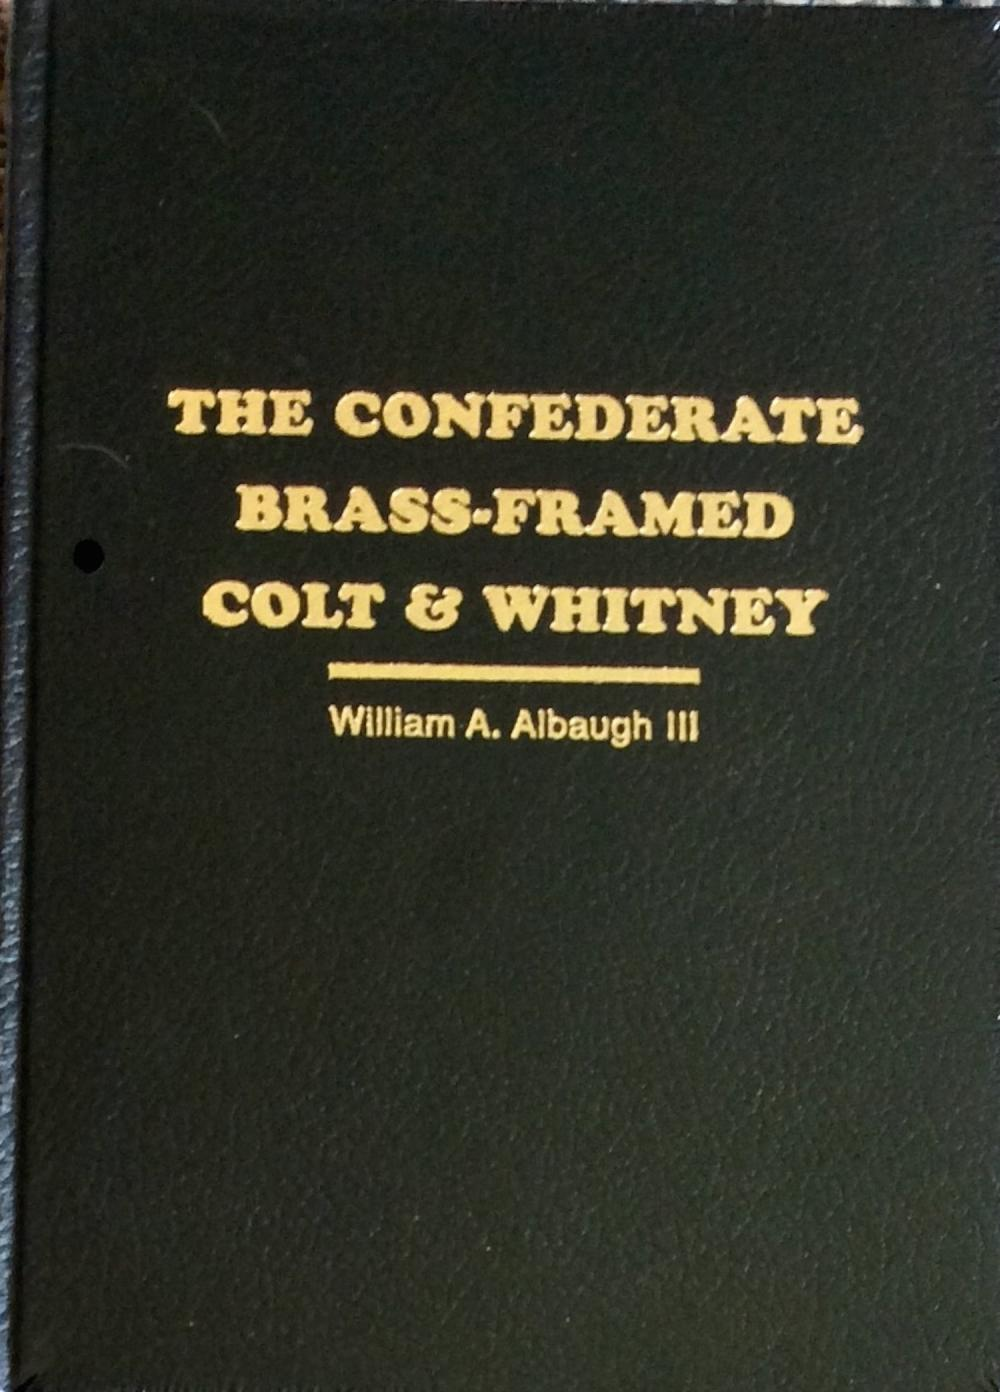 """The Confederate Brass-Framed Colt & Whitney"" by William Albaugh & ""The Original Confederate Colt"" by William Albaugh & Richard Steuart Collectible Lot Of (2) Confederate Civil War Reference Hardcovers On Revolvers"